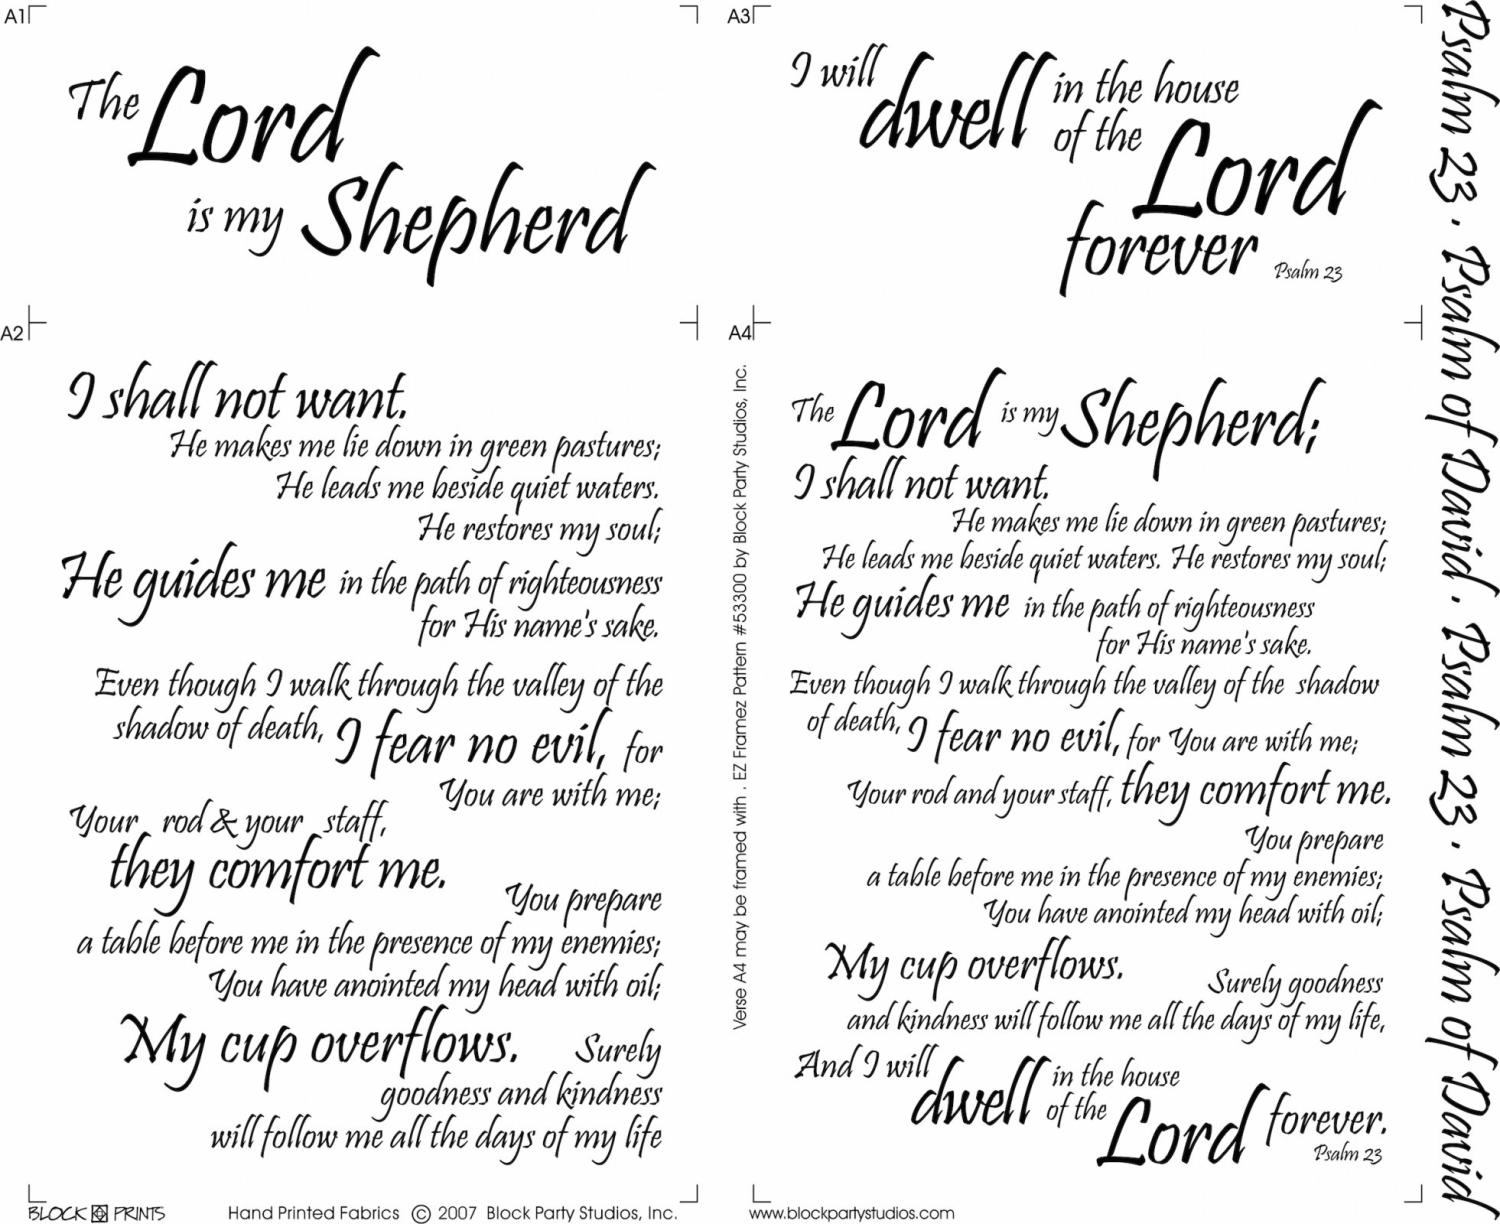 Psalms 23 panel by Block Party Studios (646BW)